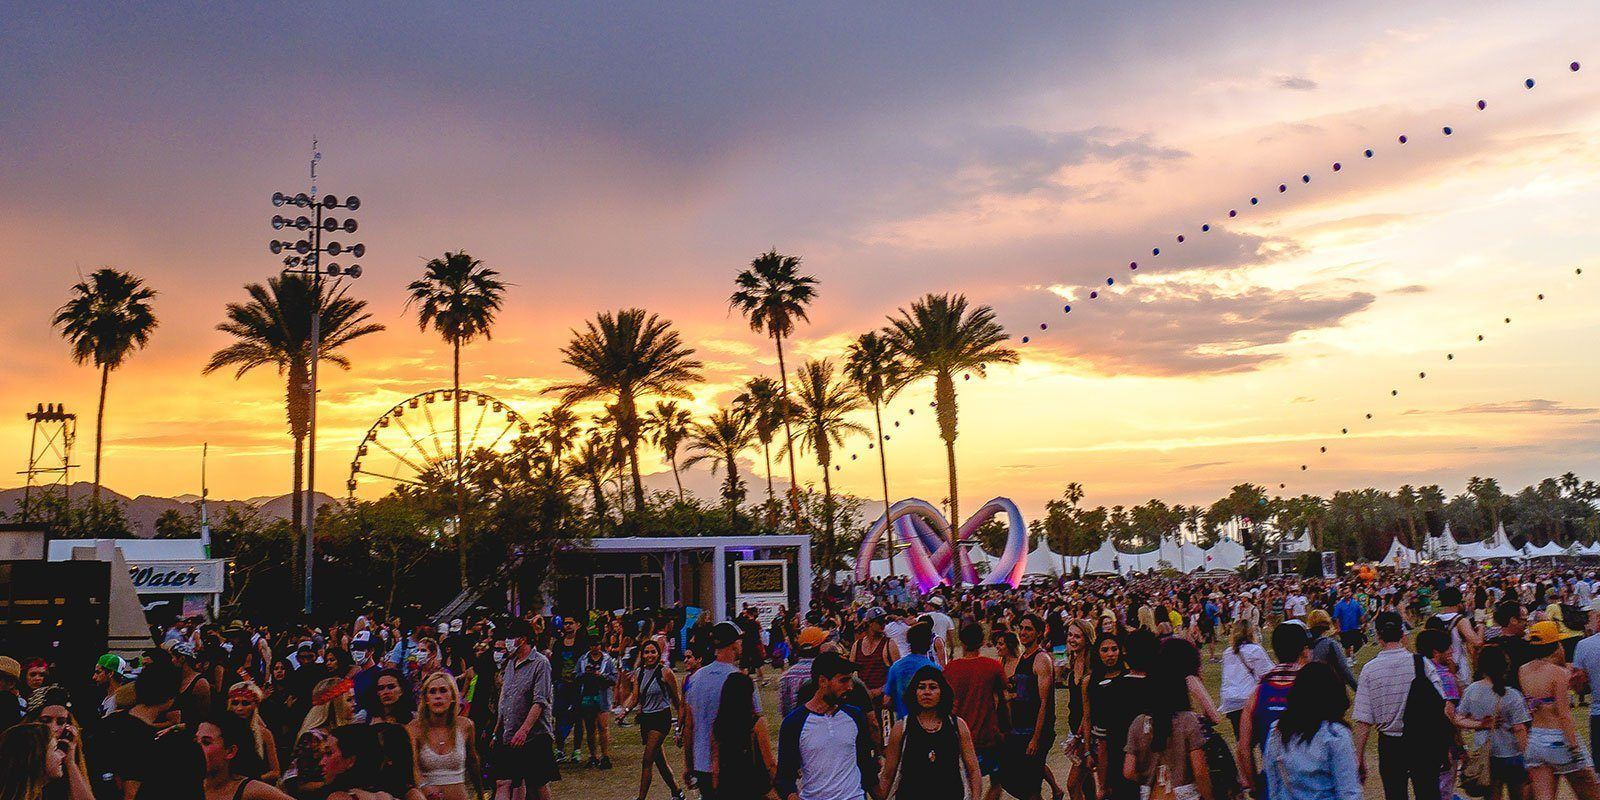 TOP 5 FESTIVALS TO LOOK OUT FOR IN THE US THIS SUMMER